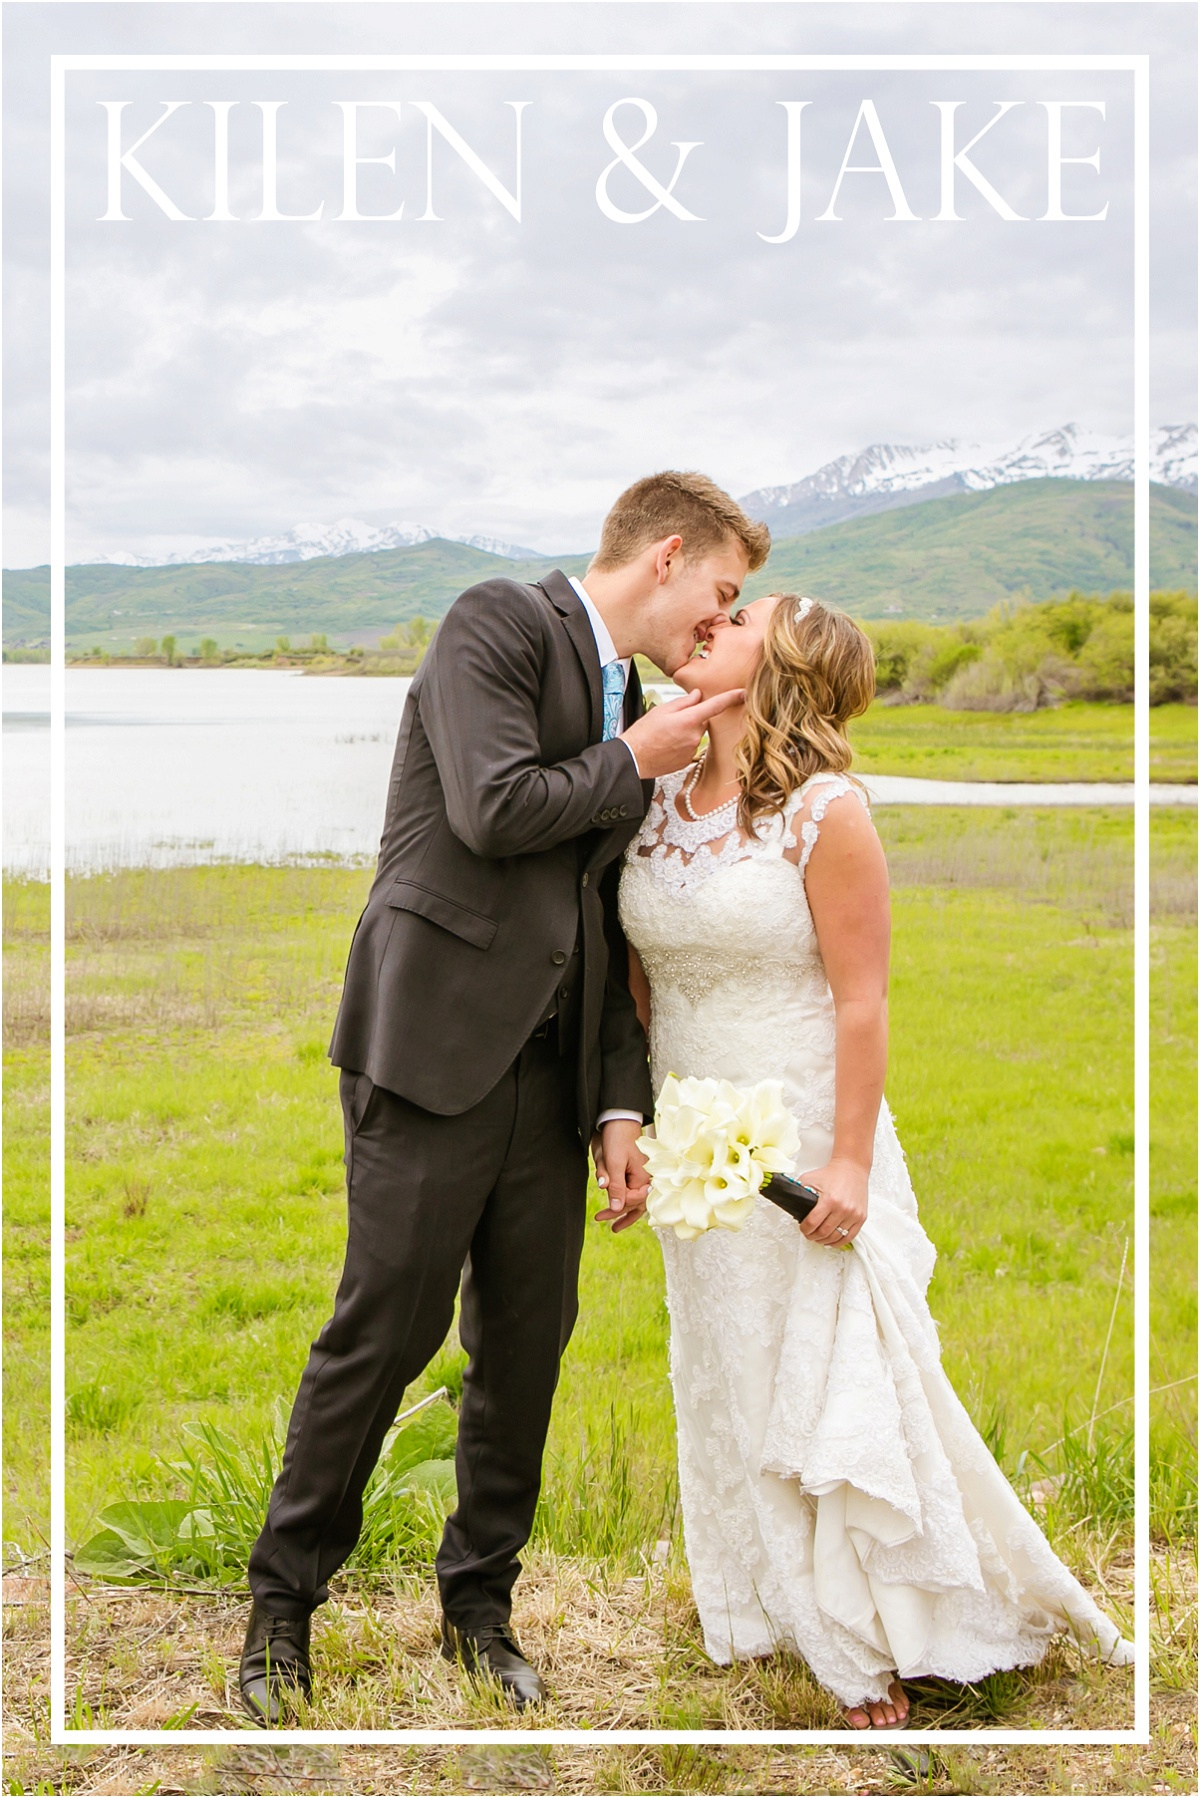 Terra Cooper Photography Weddings Brides 2015_5402.jpg